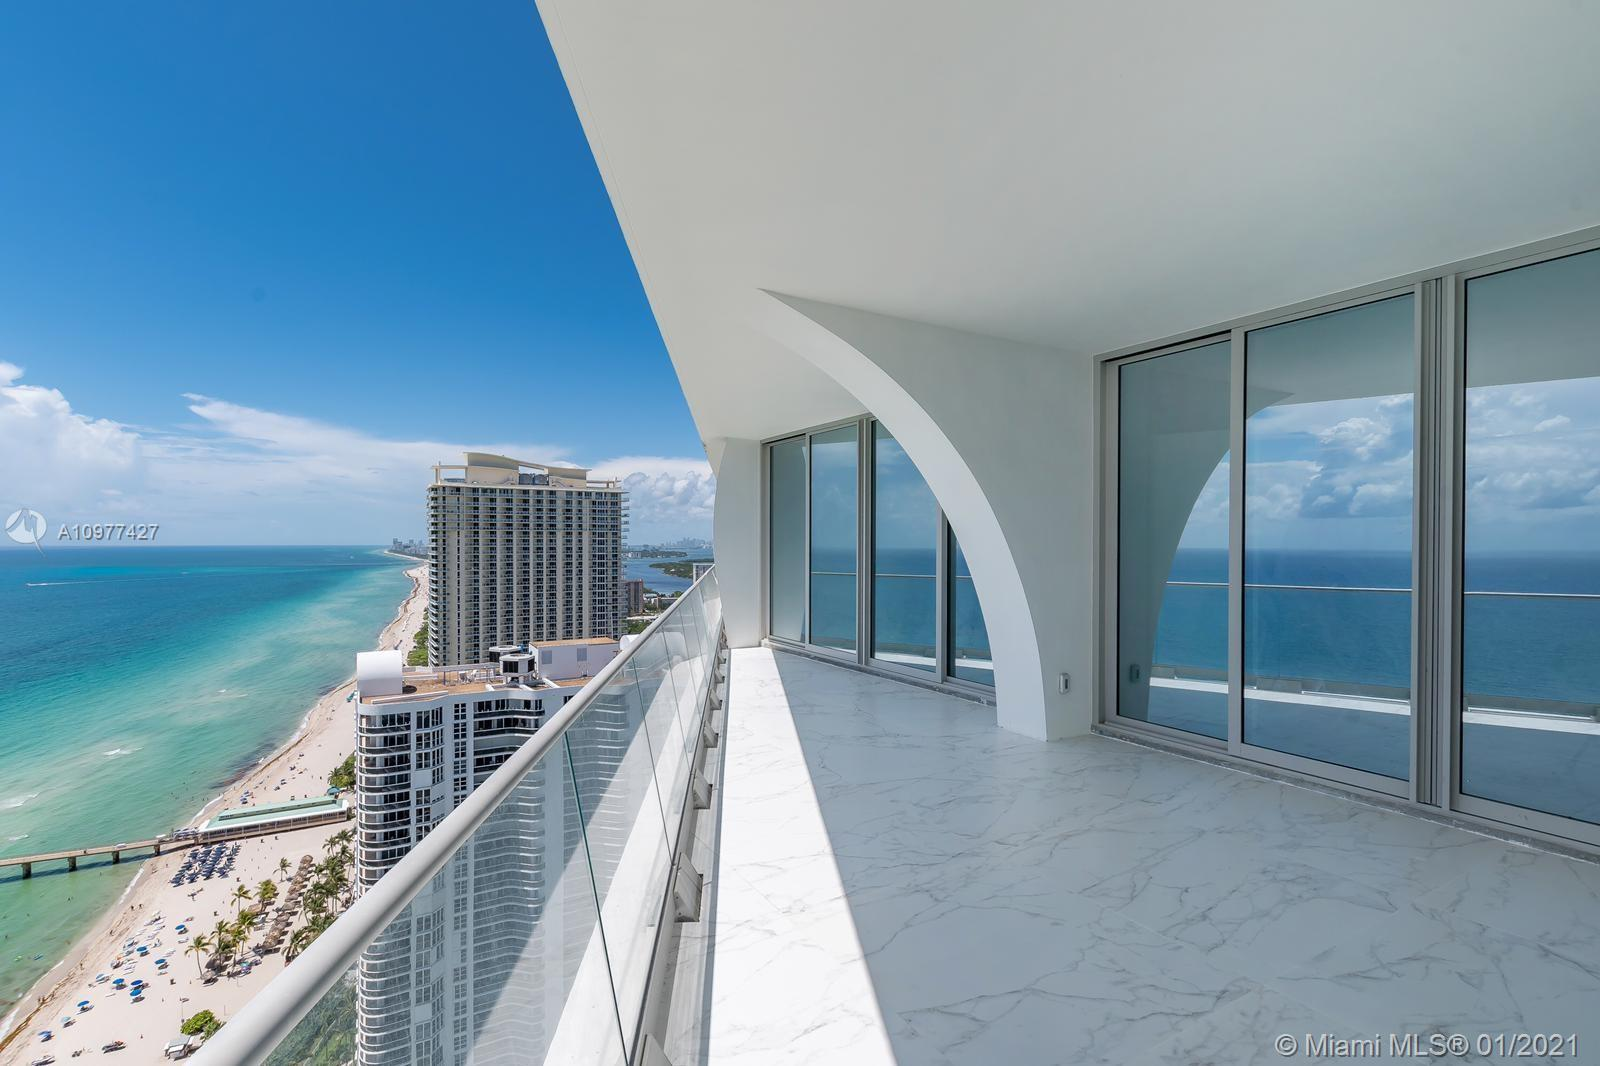 STUNNING DIRECT OCEAN AND INTRACOASTAL VIEWS!!!! A PALACE IN THE SKY. EXCLUSIVE SUNNY ISLES. JADE SIGNATURE HAS IT ALL! AMENITIES GALORE! GREAT SCHOOLS, WALK TO RESTAURANTS, HOUSES OF WORSHIP, GROCERIES STORES AND SHOPPING. LIVE ON VACATION ALL YEAR ROUND. MUST SEE!!!!